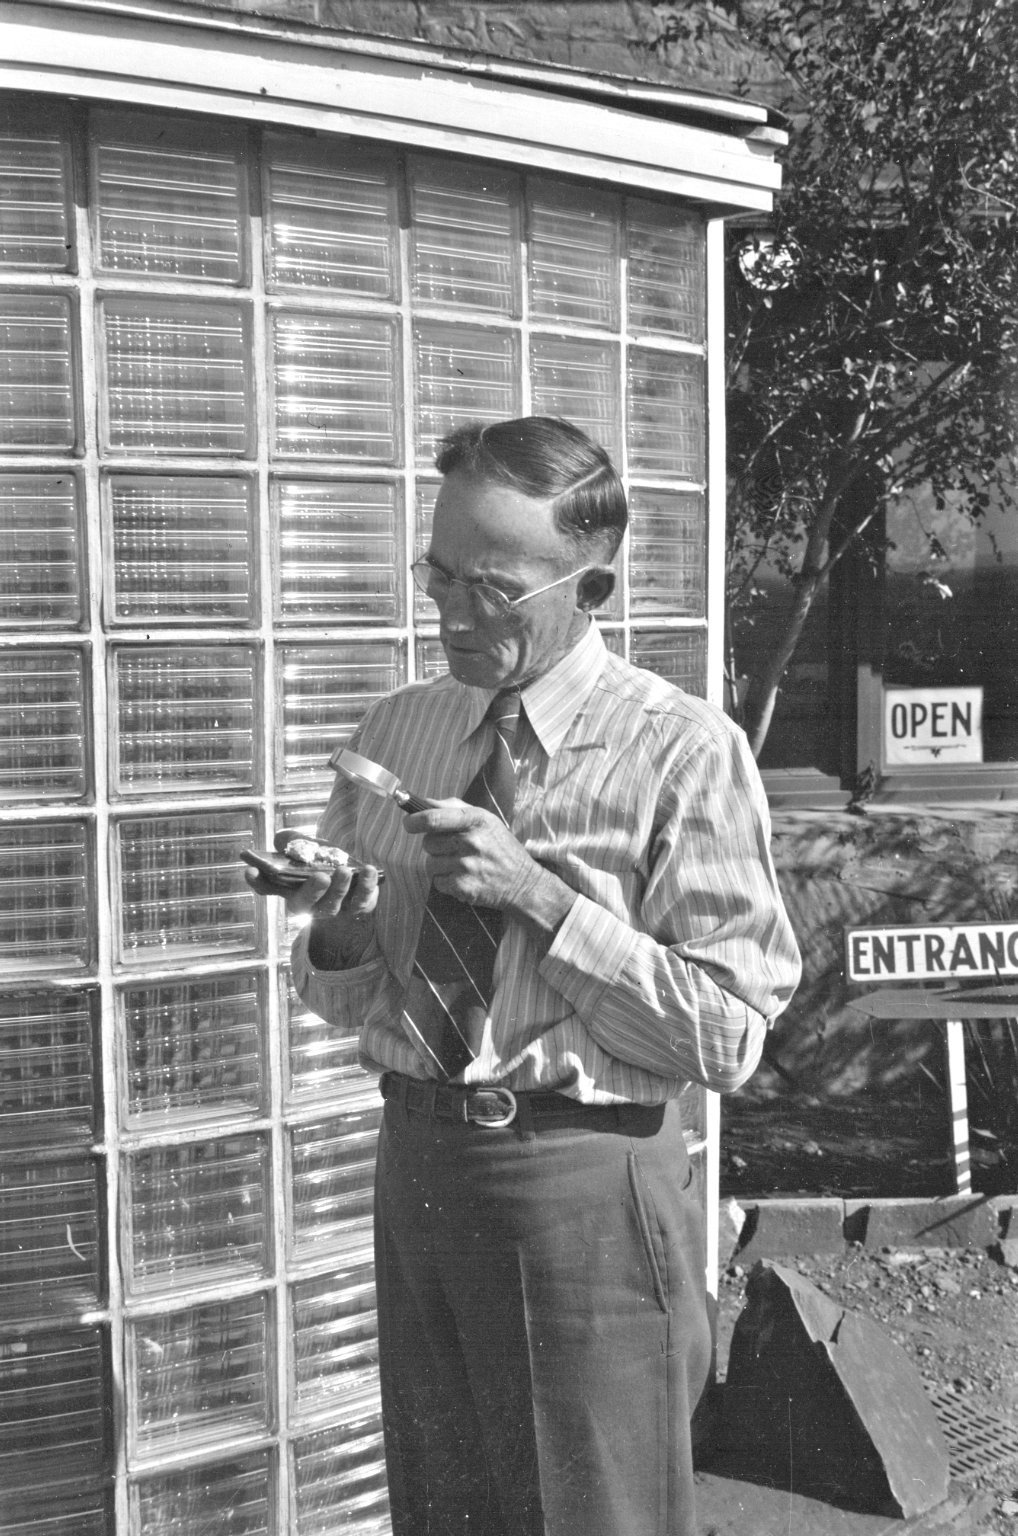 H.H. Nininger examining fragments of the Norton County, Kansas meteorite with magnifying glass at the American Meteorite Museum near Winslow, Arizona.